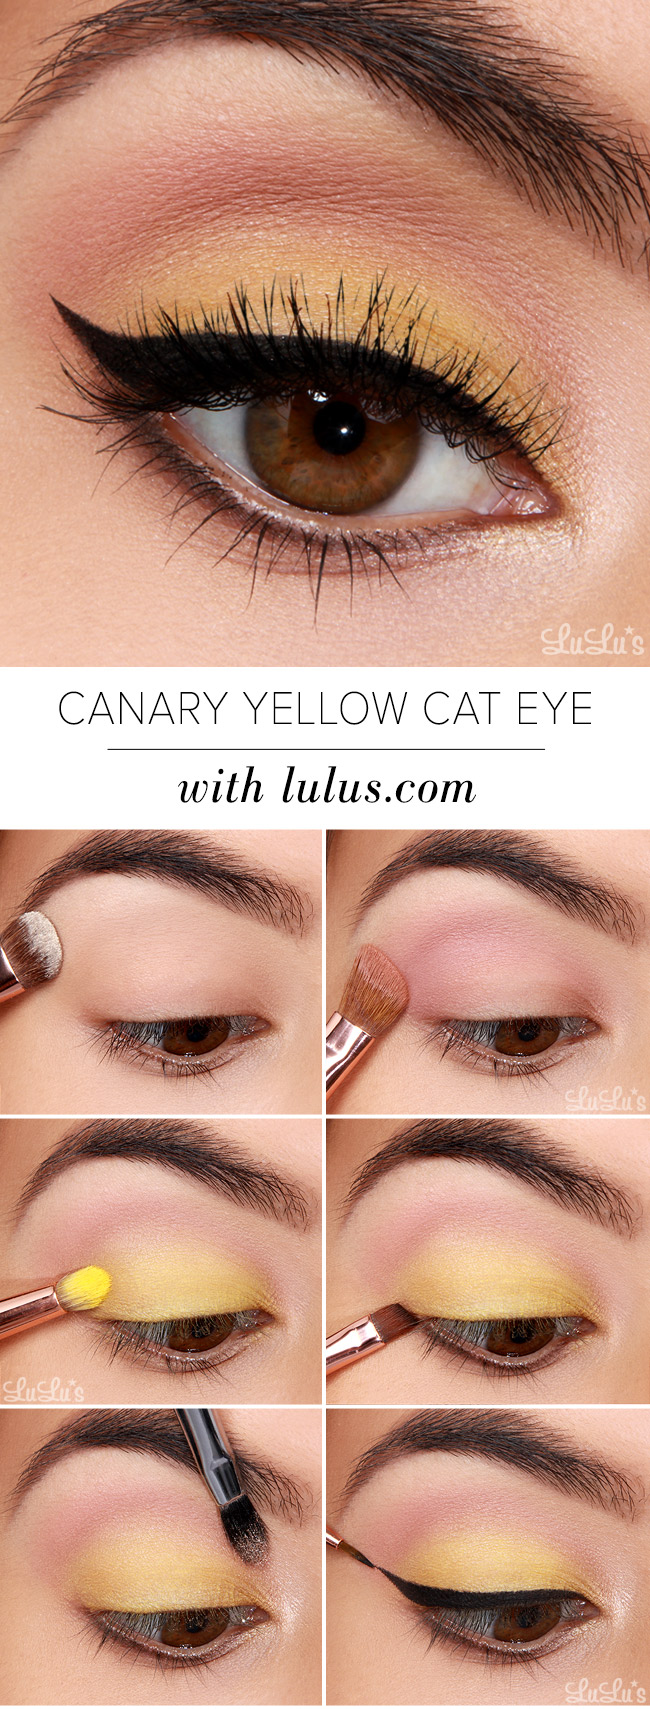 Makeup tutorial archives lulus fashion blog lulus how to canary yellow eye makeup tutorial at lulus baditri Image collections